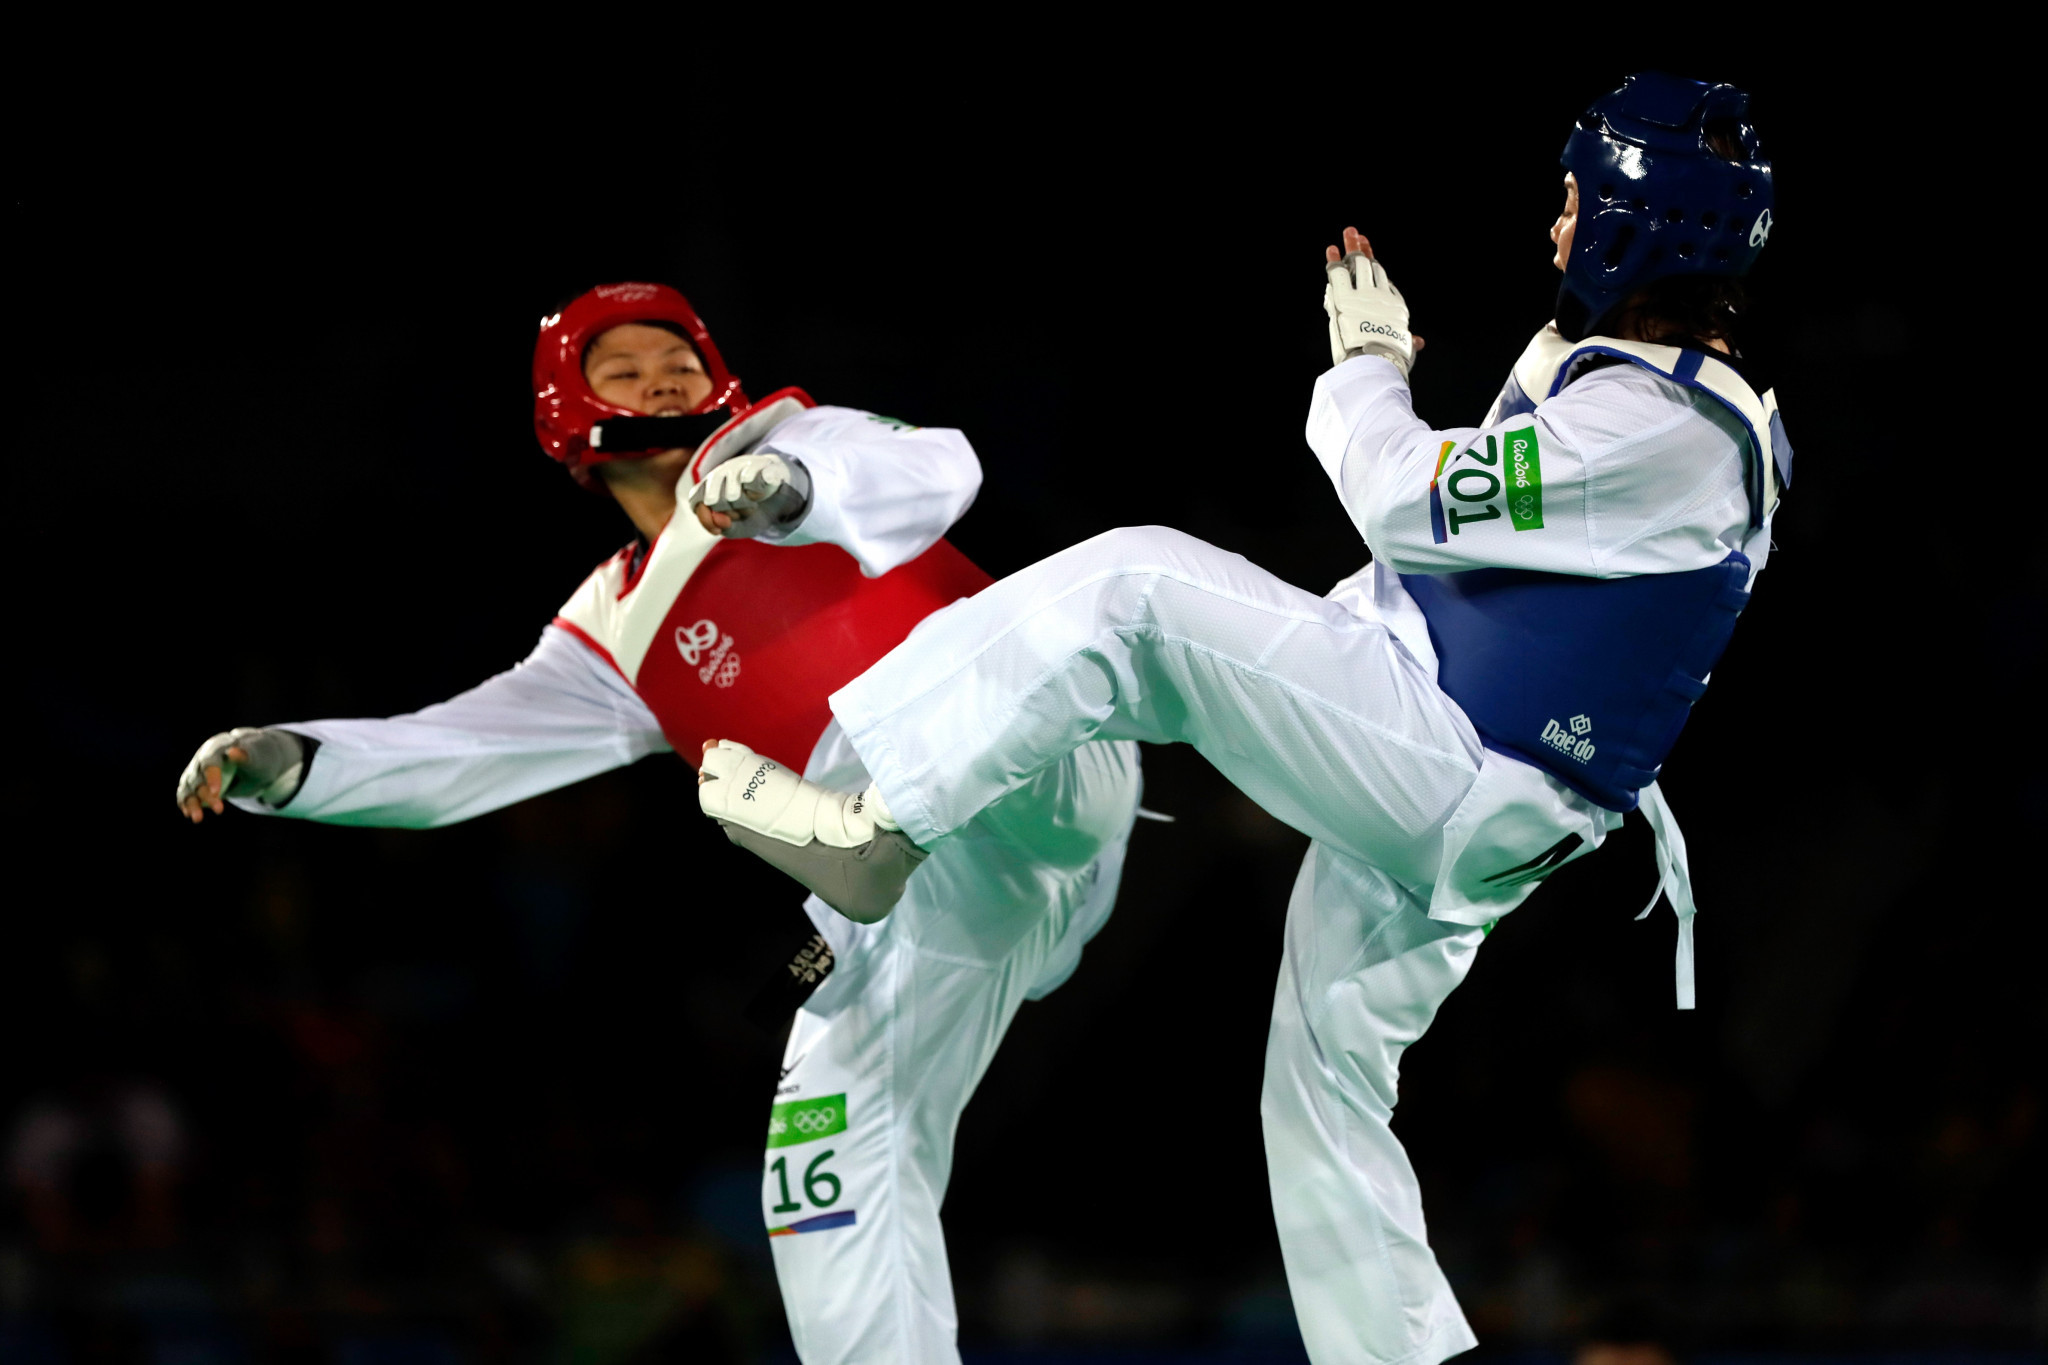 Alora lost to María Espinoza of Mexico in the opening round at Rio 2016 ©Getty Images